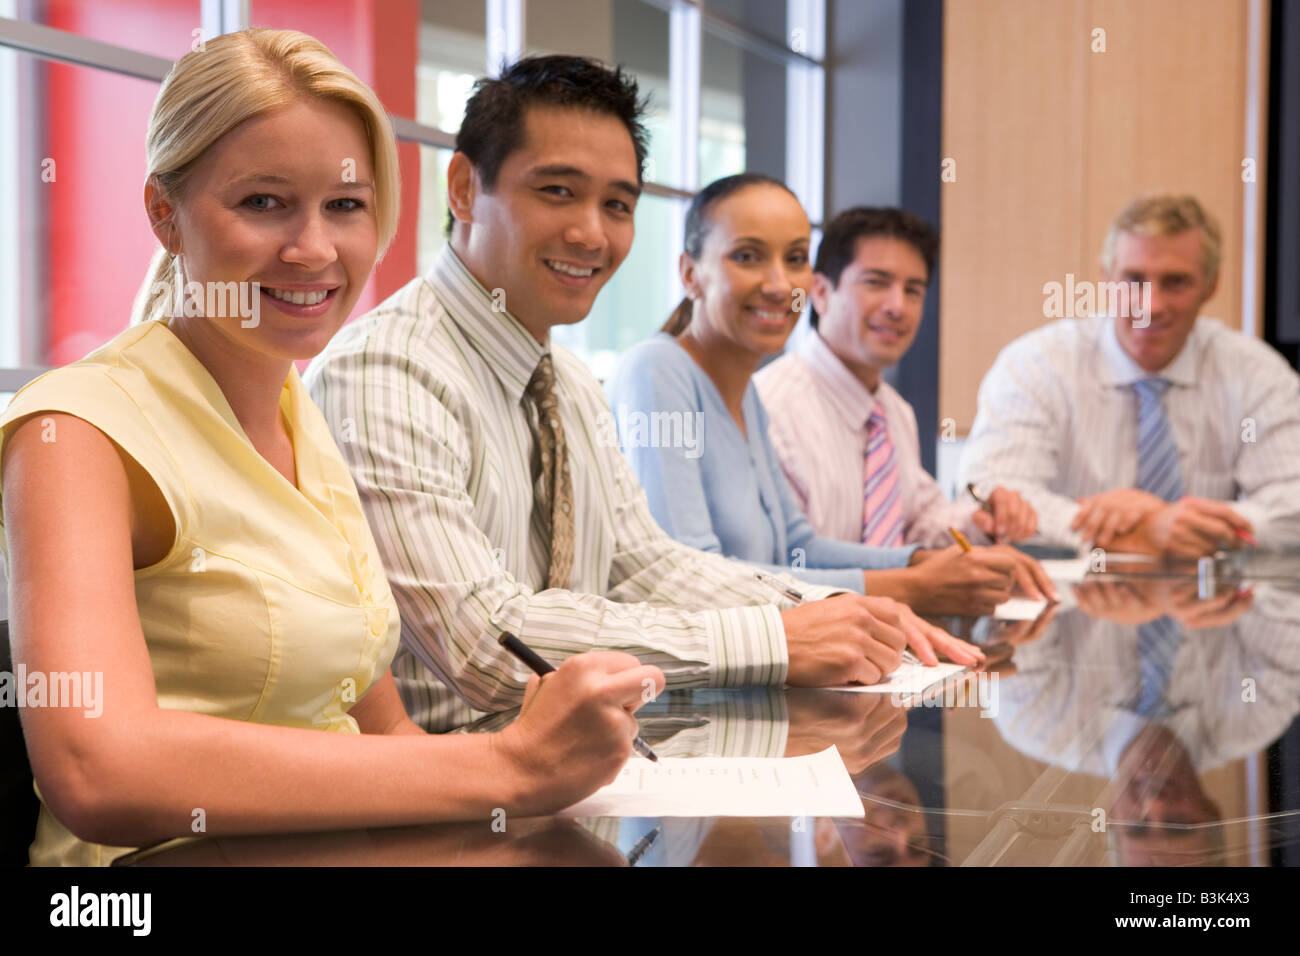 Five businesspeople in boardroom smiling - Stock Image